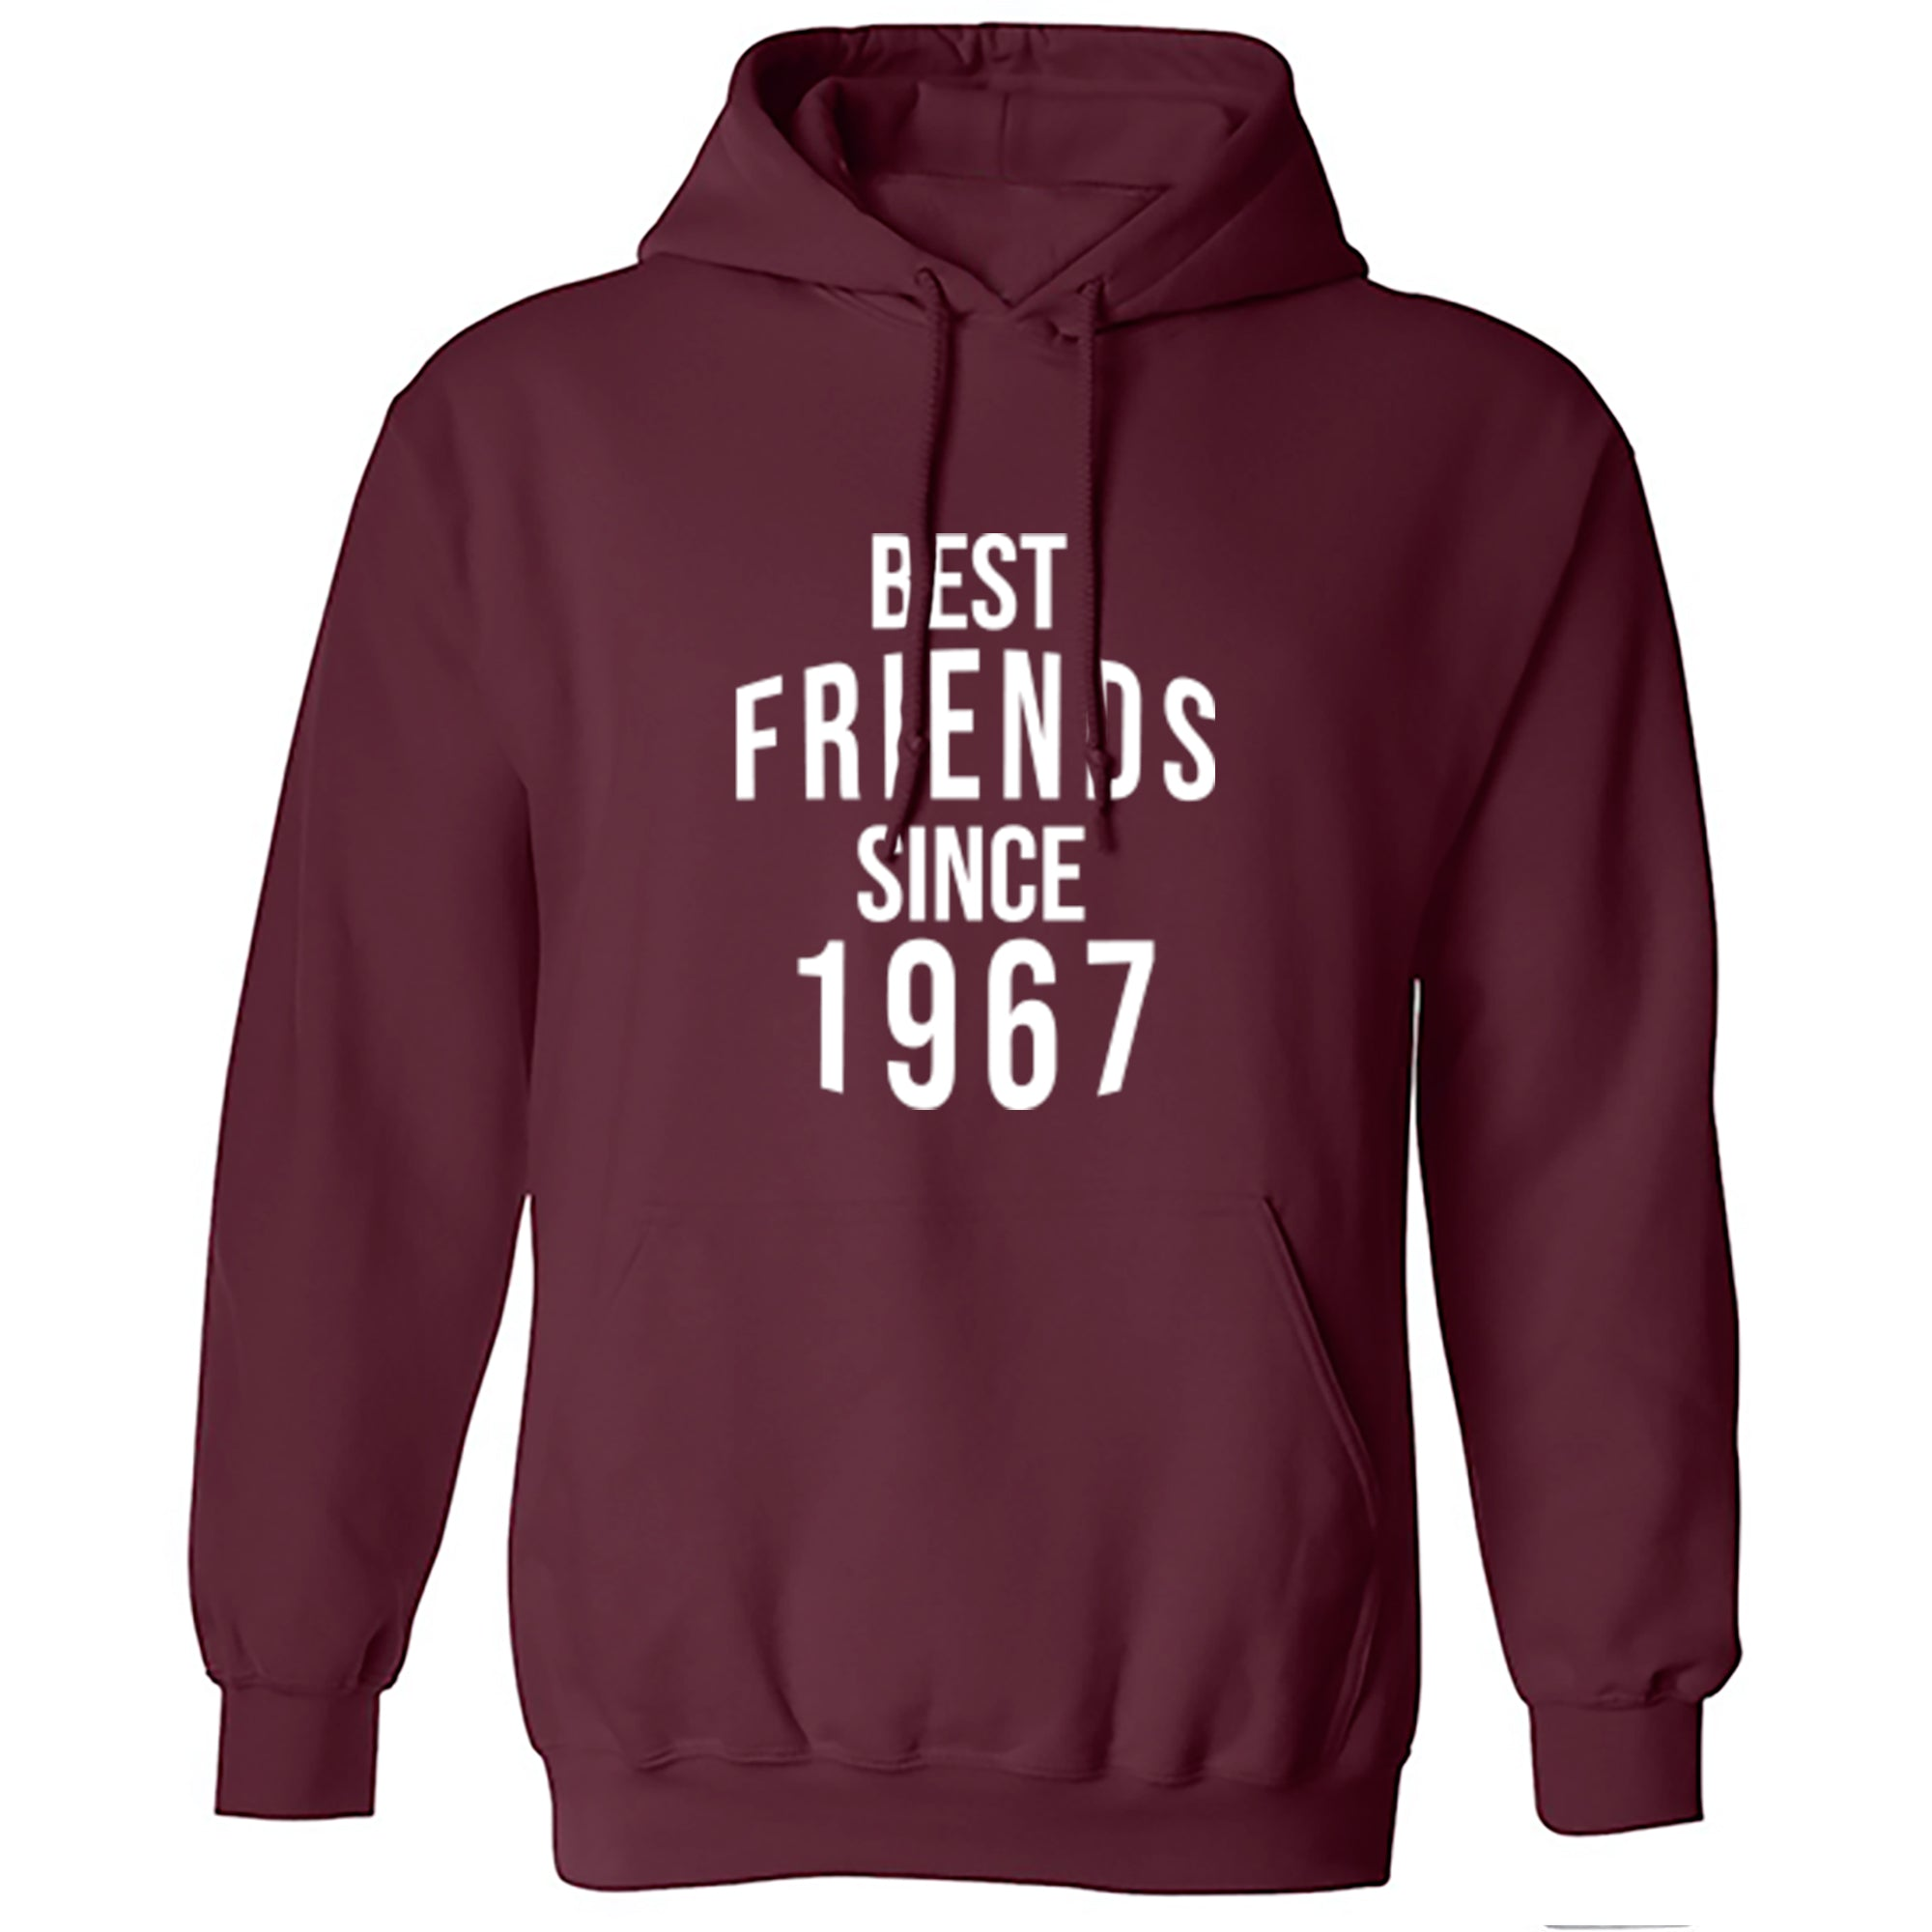 Best Friends Since 1967 Unisex Hoodie S0546 - Illustrated Identity Ltd.